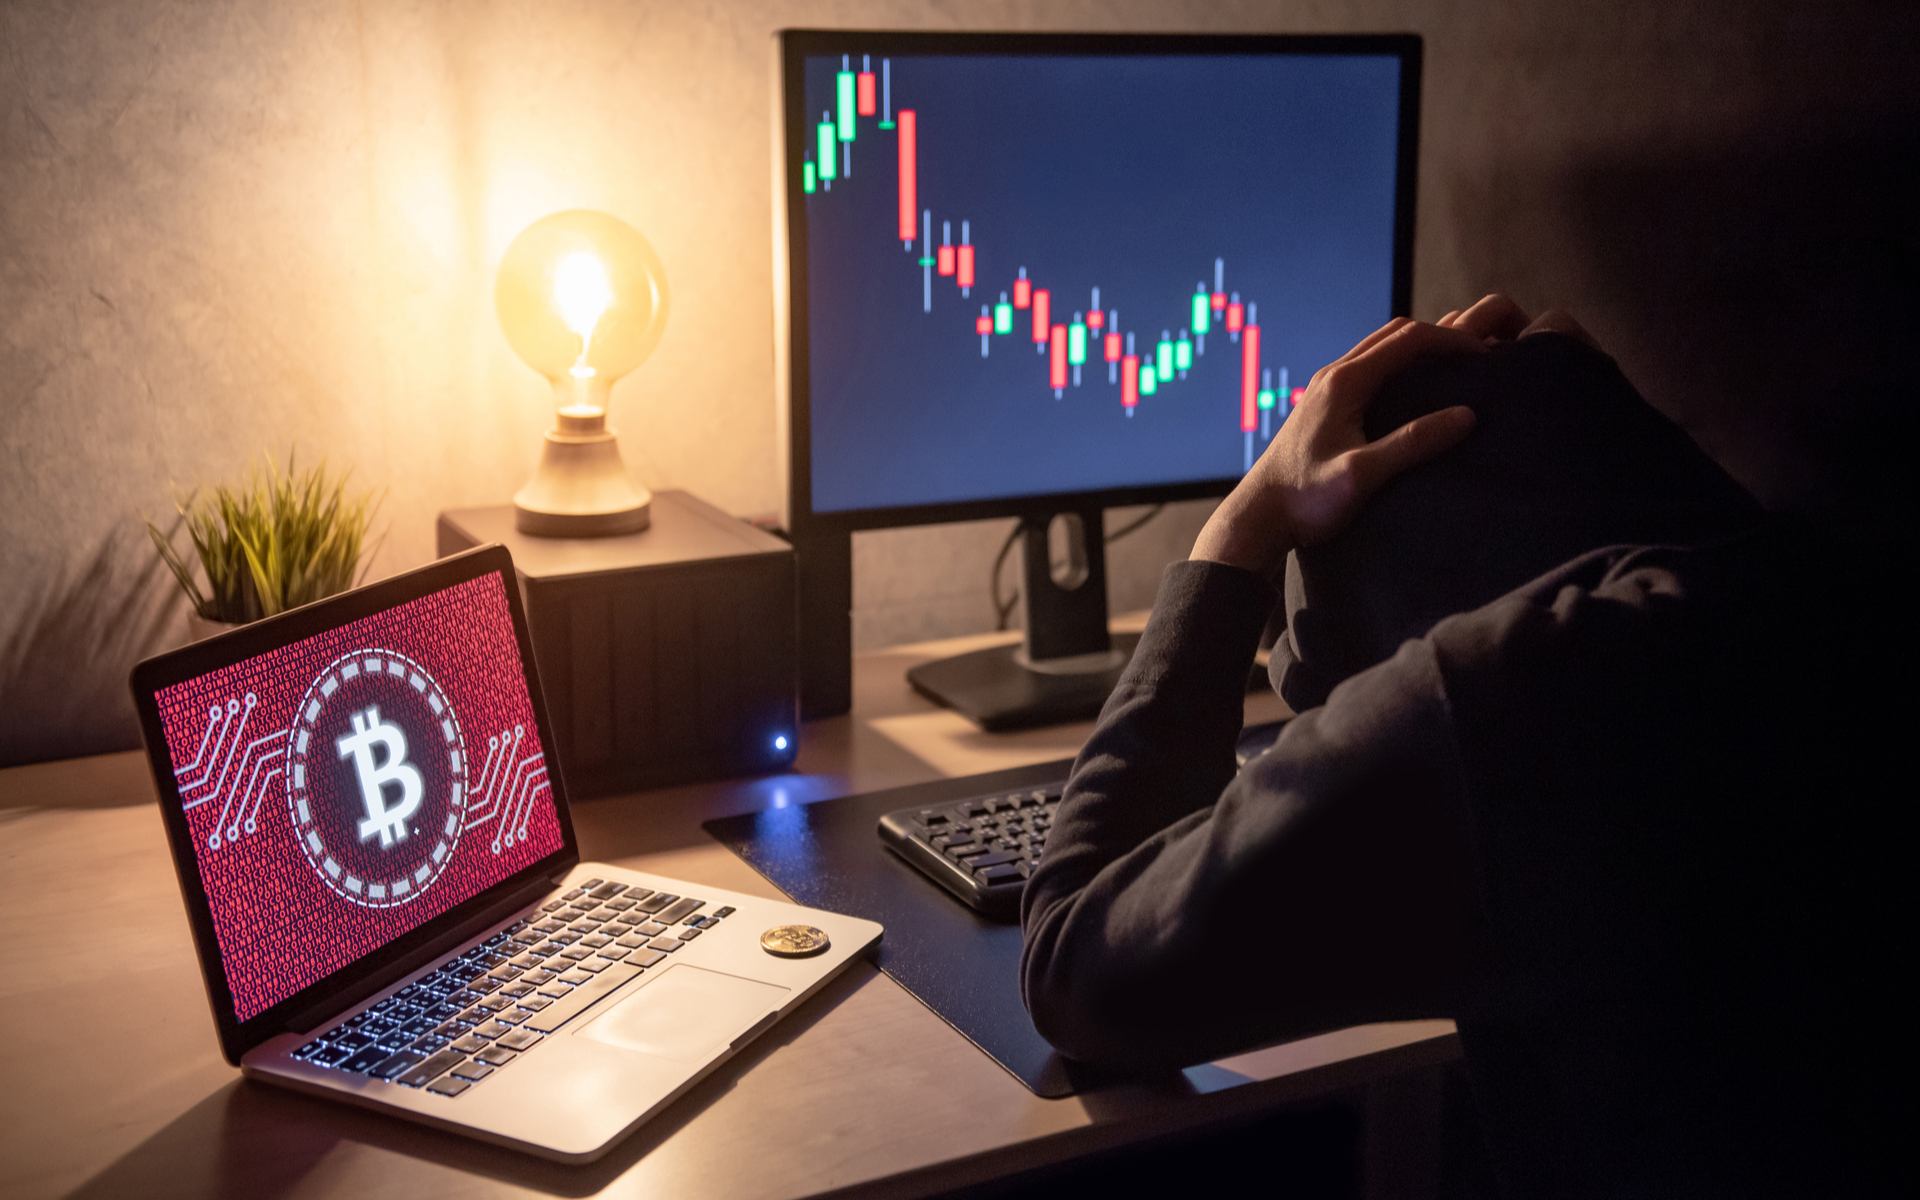 Student Turns $5K into $800K Trading Crypto, But Now Owes $400K in Taxes